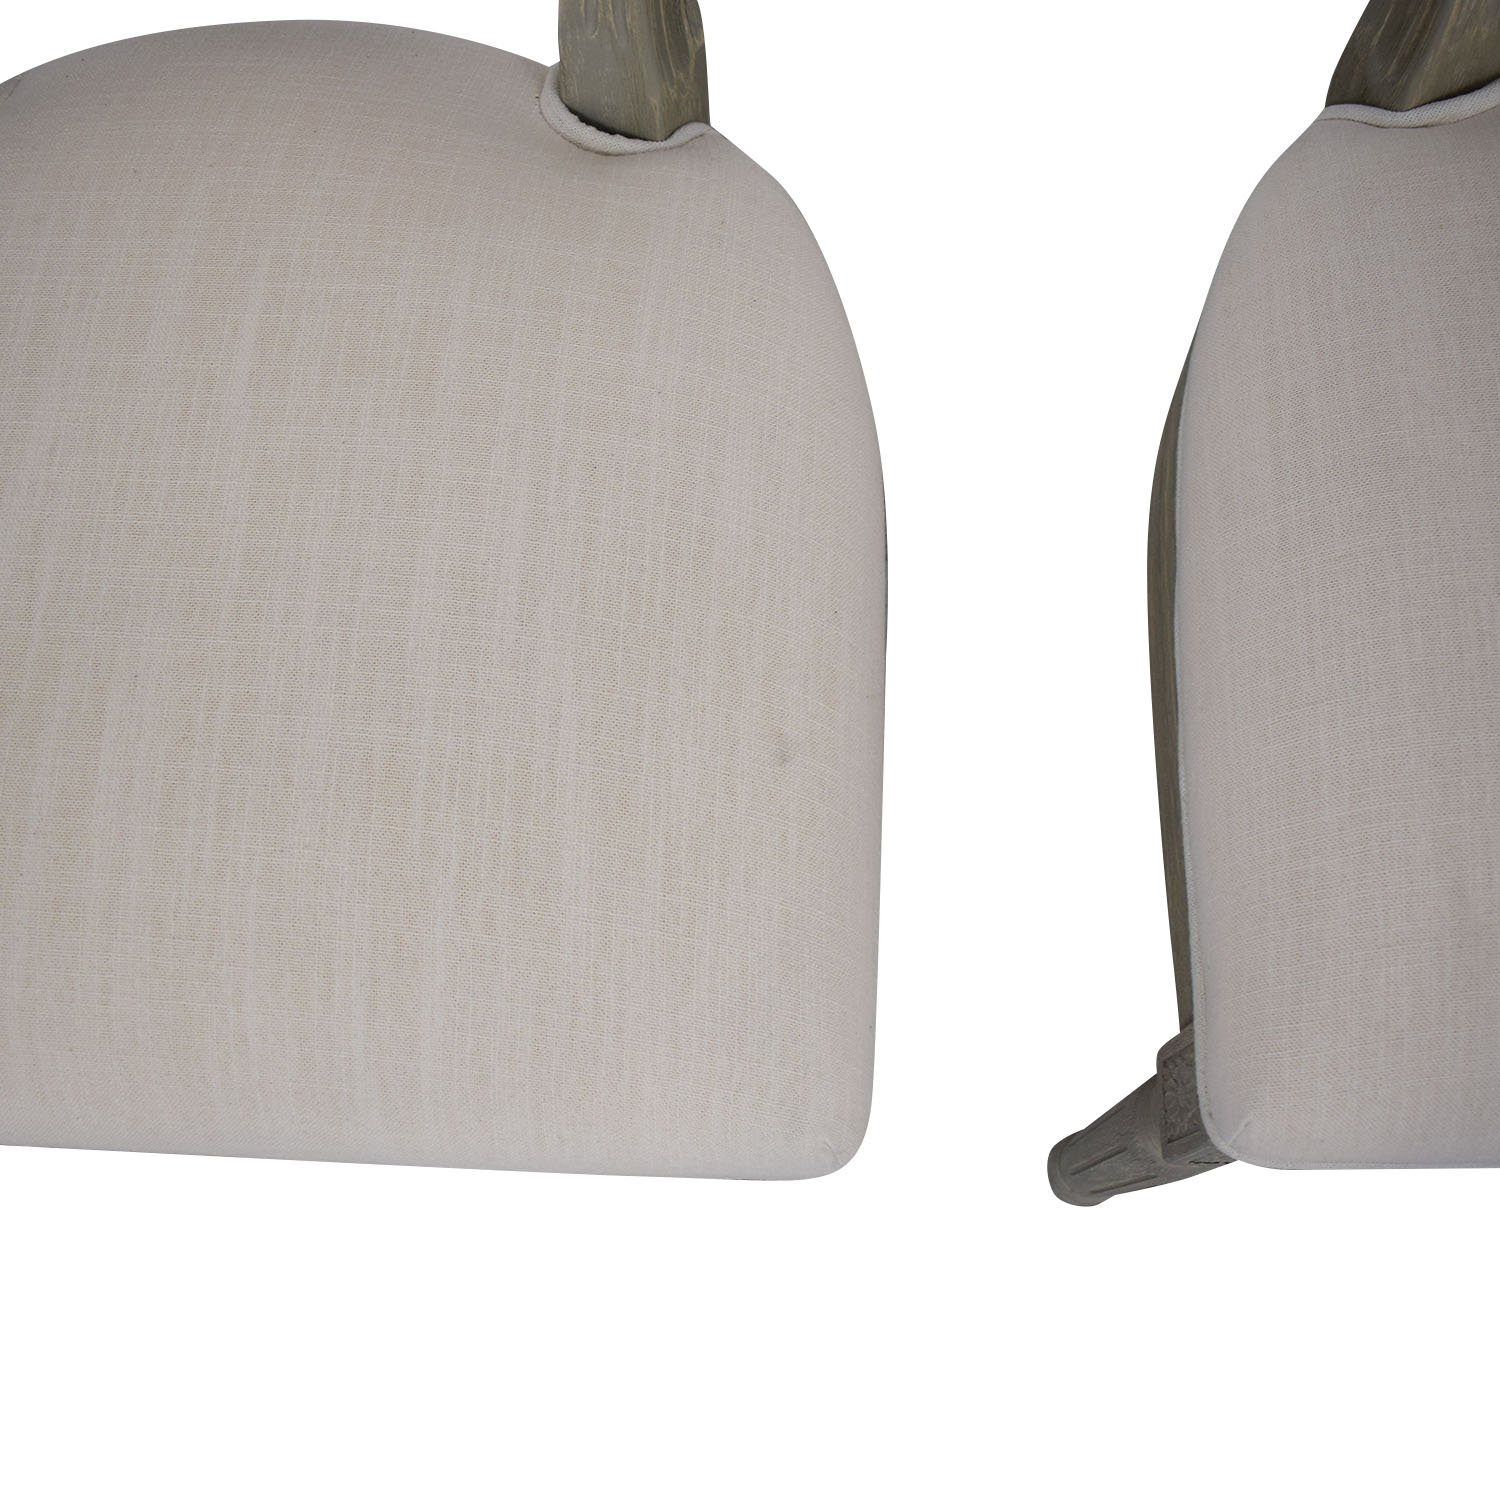 Joss & Main Joss & Main Chestertown Upholstered Dining Chairs for sale